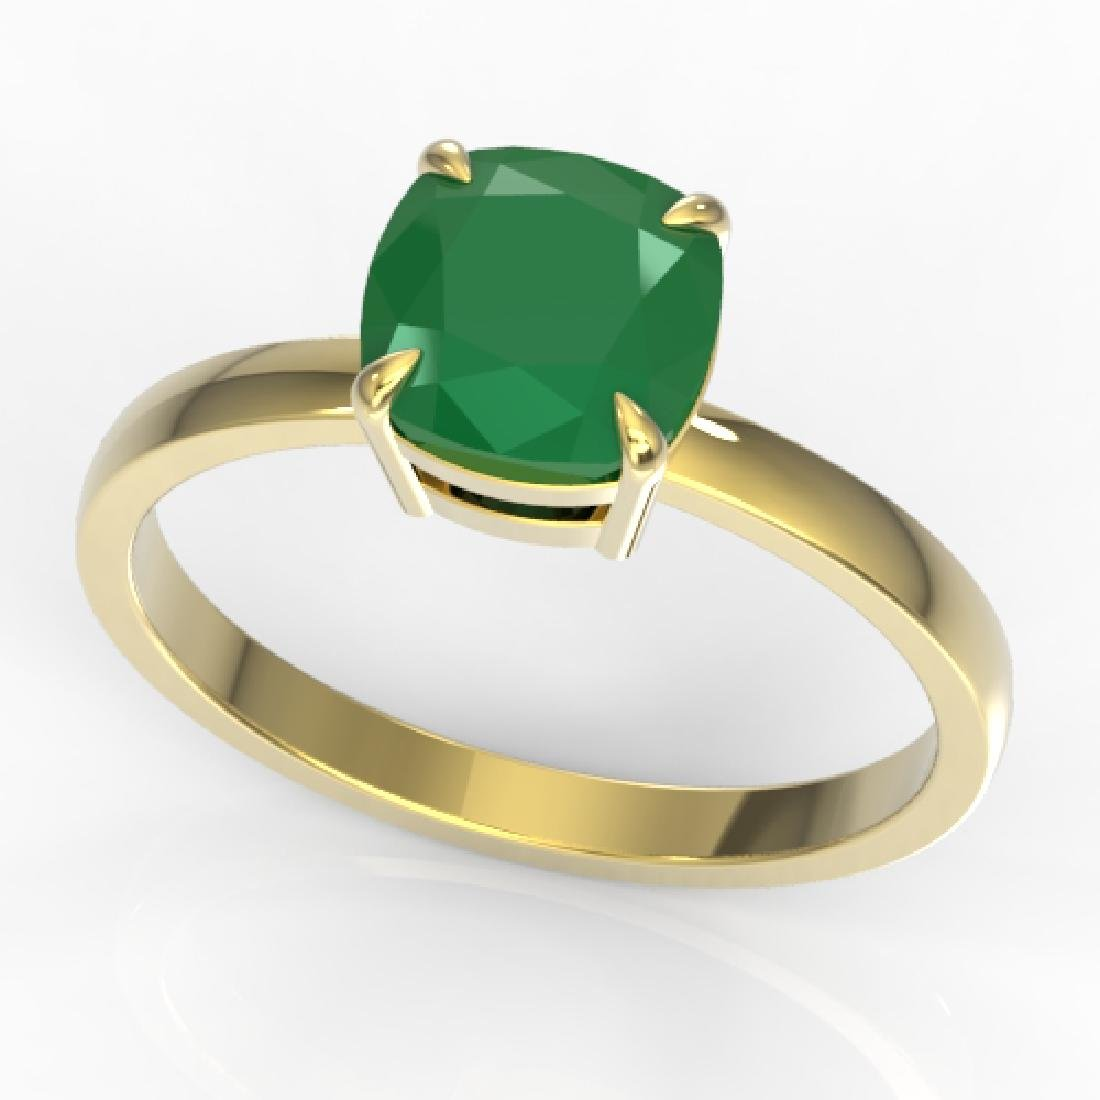 2 CTW Cushion Cut Emerald Solitaire Engagement Ring 18K - 2